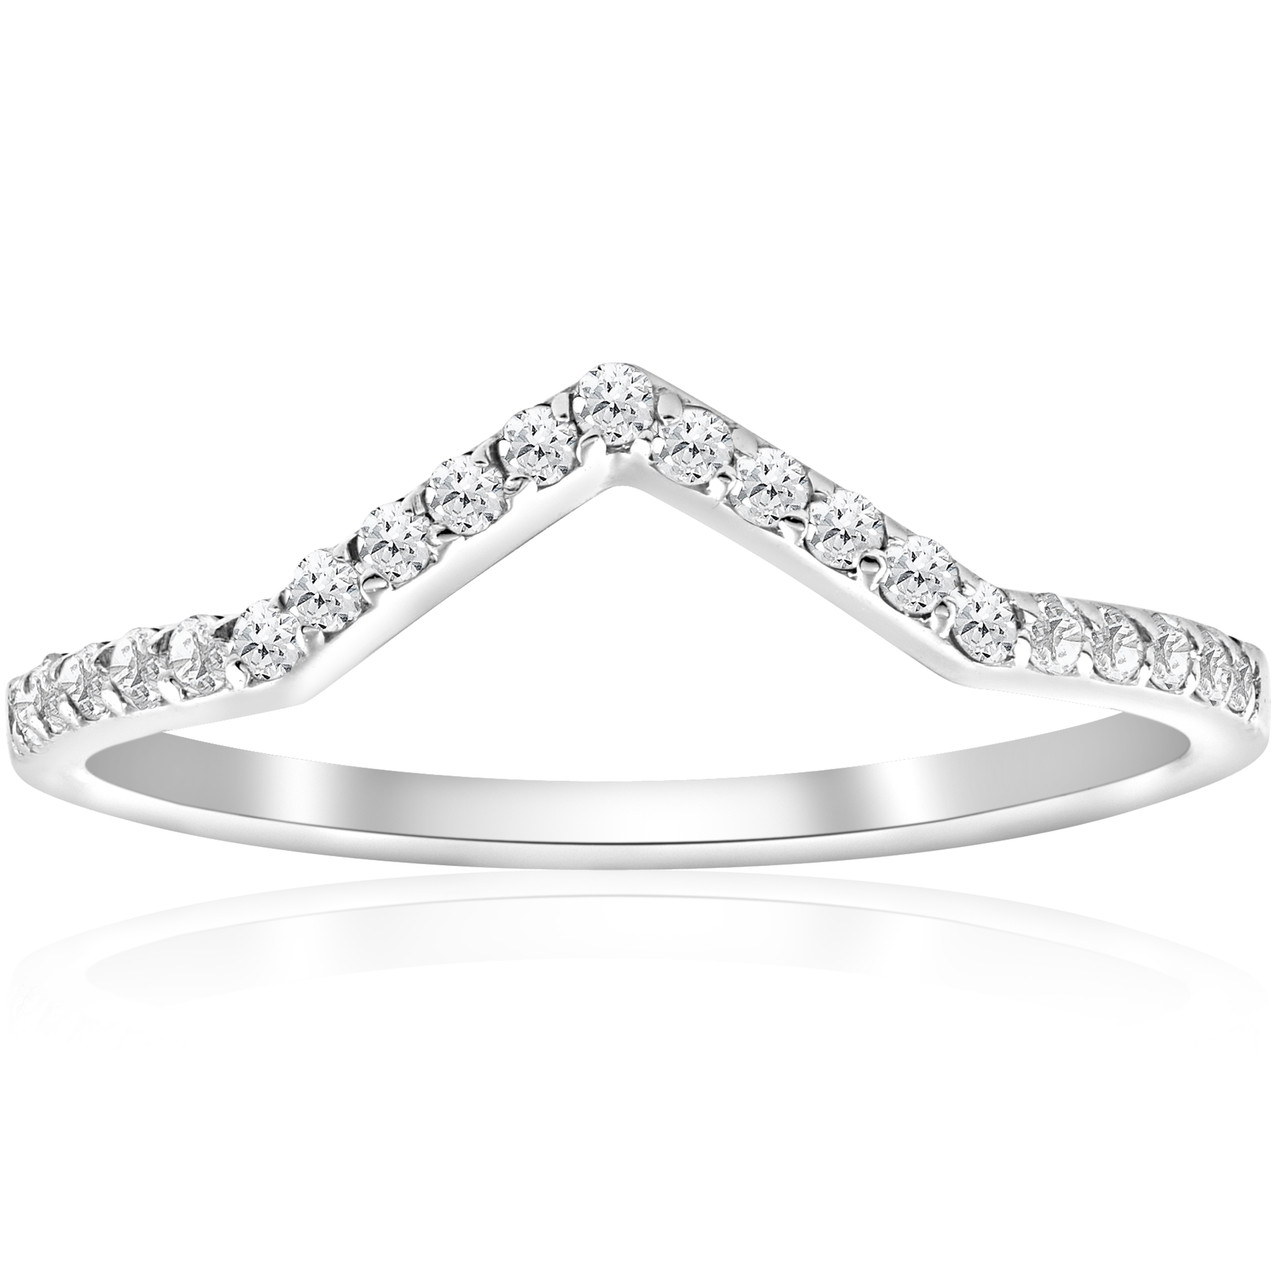 15ct Diamond Curved V Shape Ring Stackable Wedding Band 10k White Gold